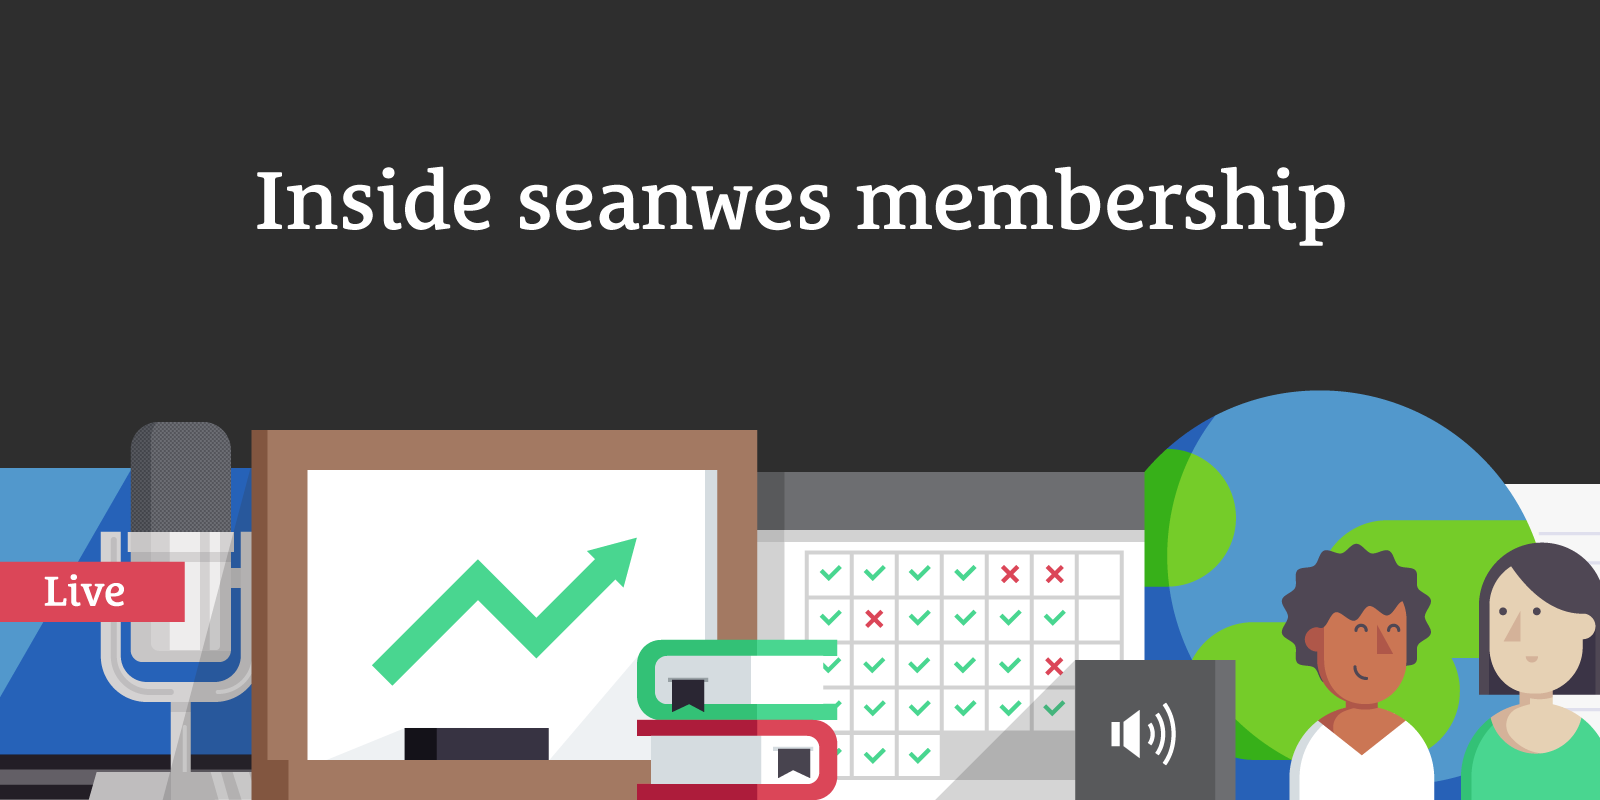 What's Inside seanwes membership?